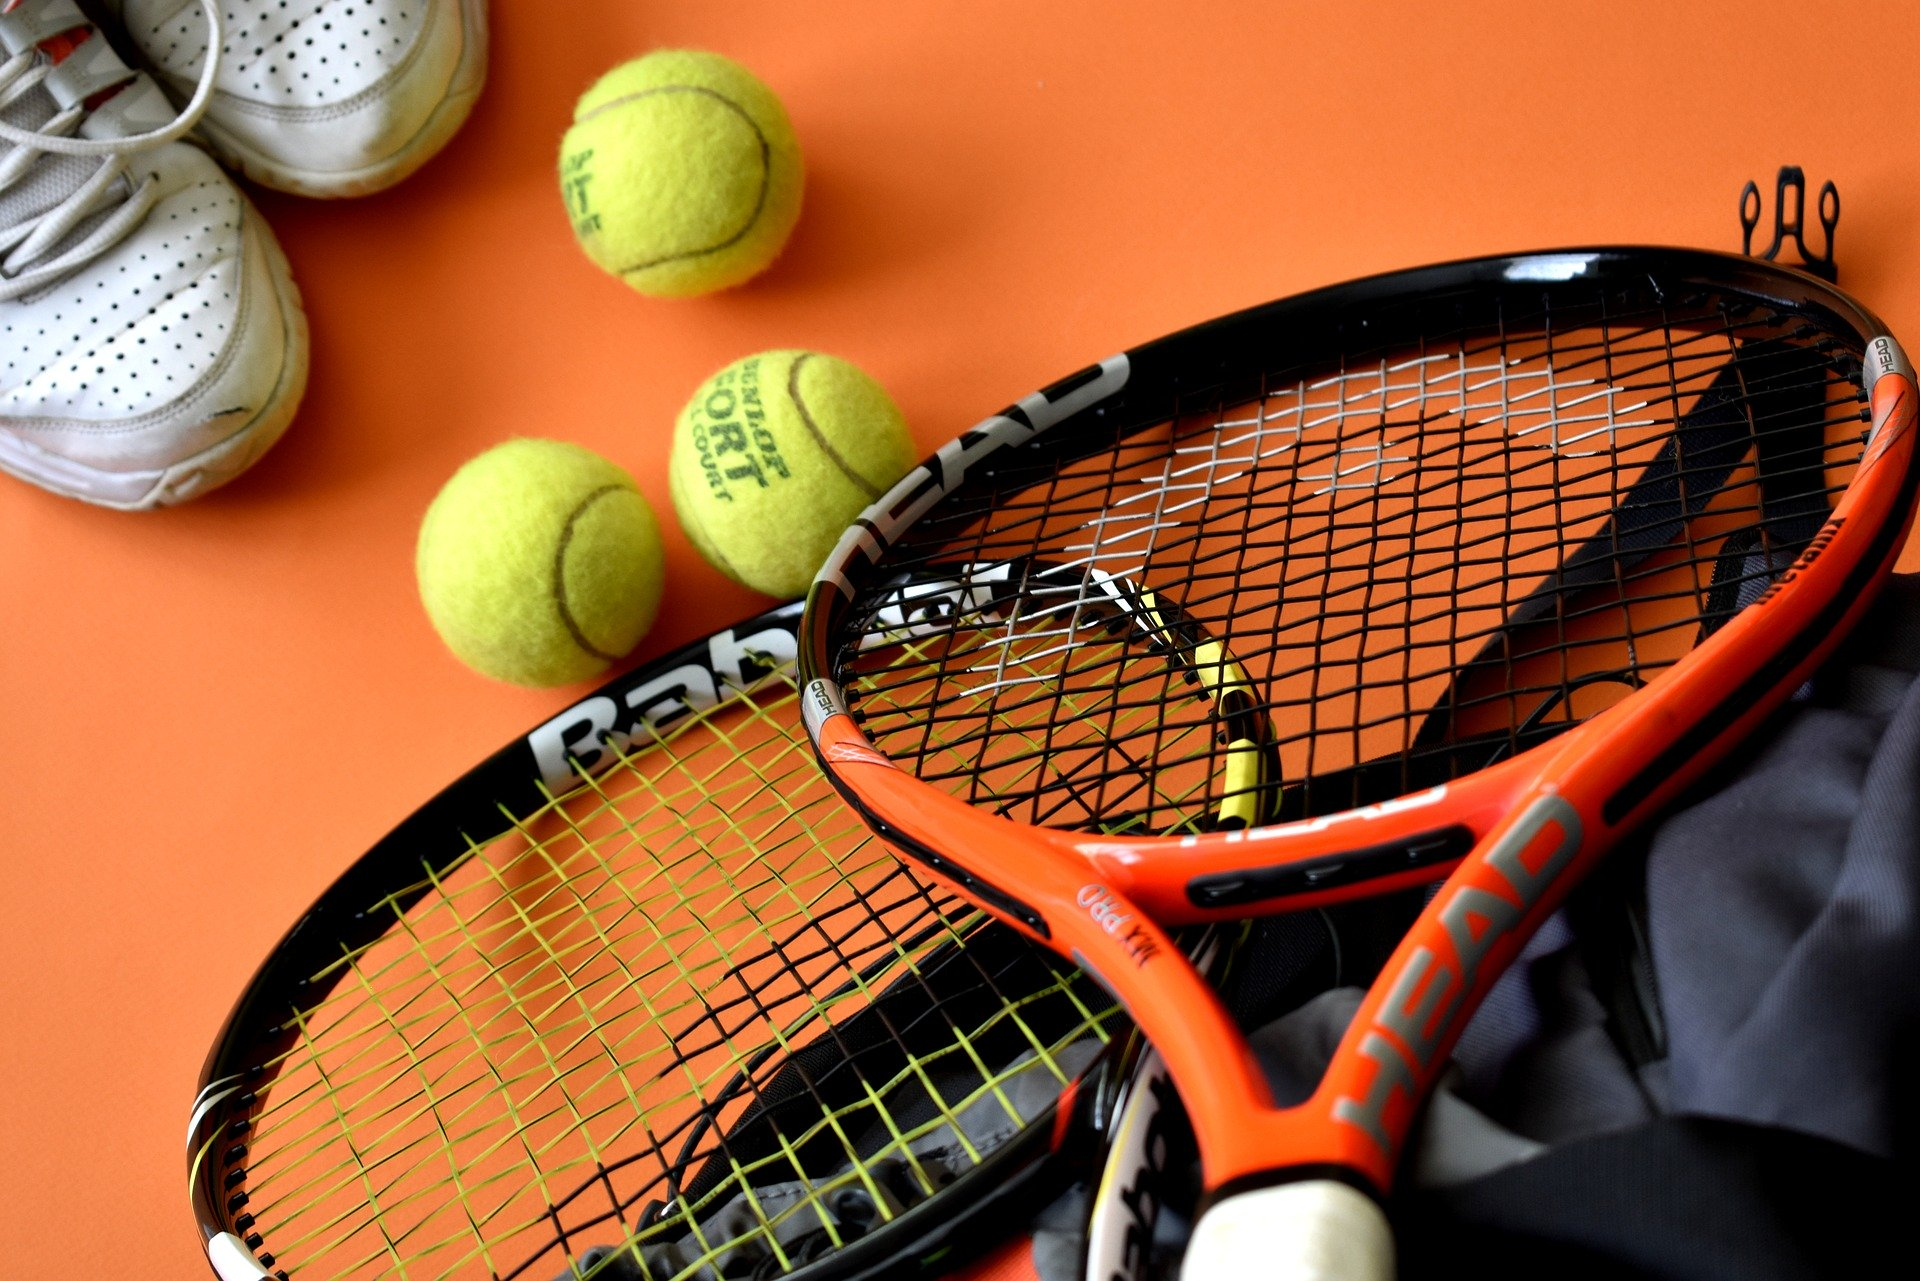 FAMILY LIFE AND TENNIS IN IRELAND